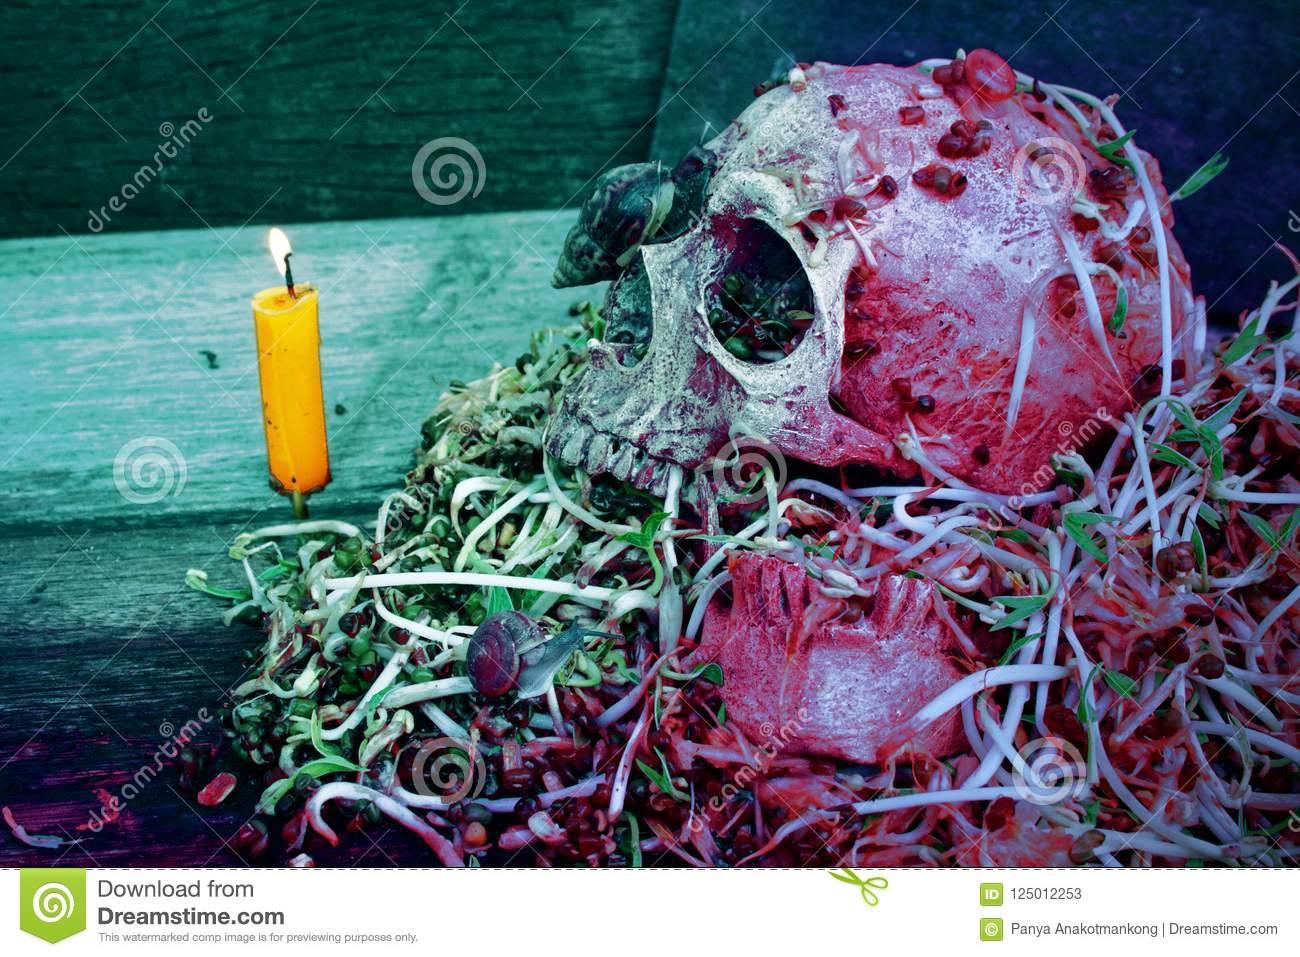 Death skull human with big snail crawl on face and rot bean sprouts